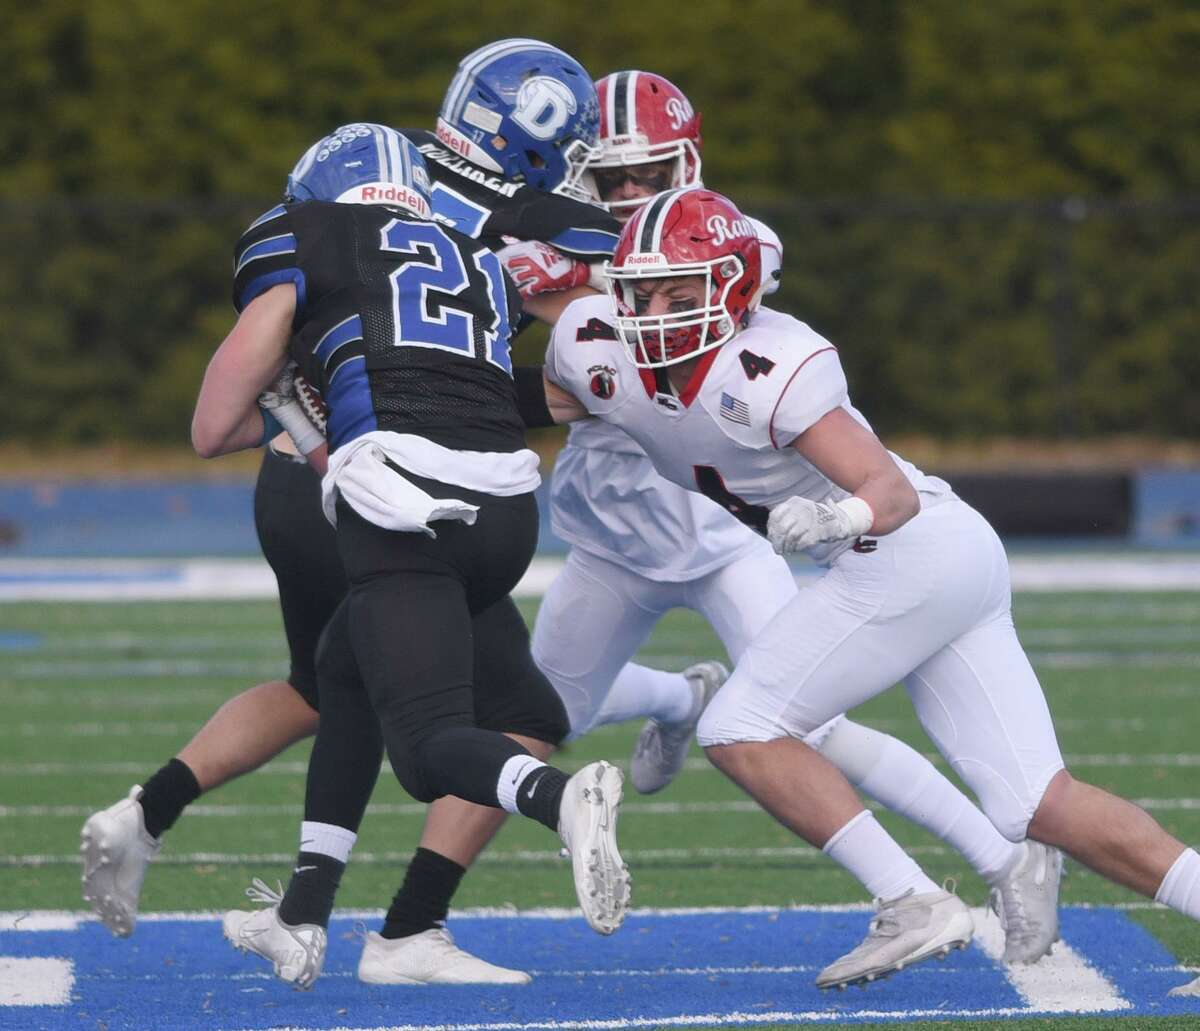 New Canaan's Drew Guida (4) catches up to Darien's Will Kirby (21) during the annuual Turkey Bowl football game at Darien High School on Thursday, Nov. 28, 2019.